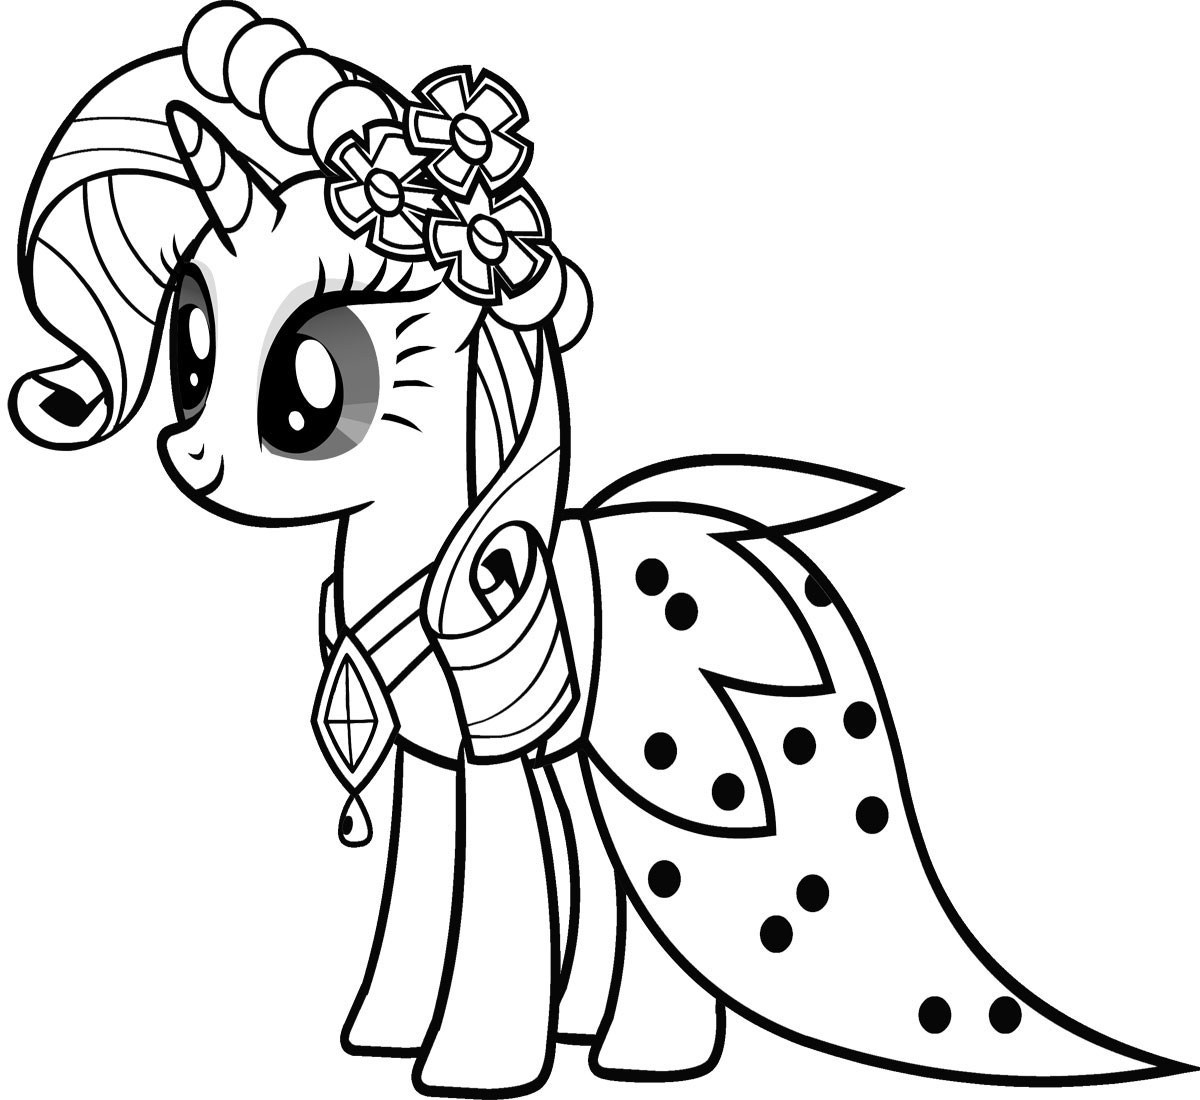 image relating to Printable My Little Pony Coloring Pages named Absolutely free Printable My Minimal Pony Coloring Webpages For Small children